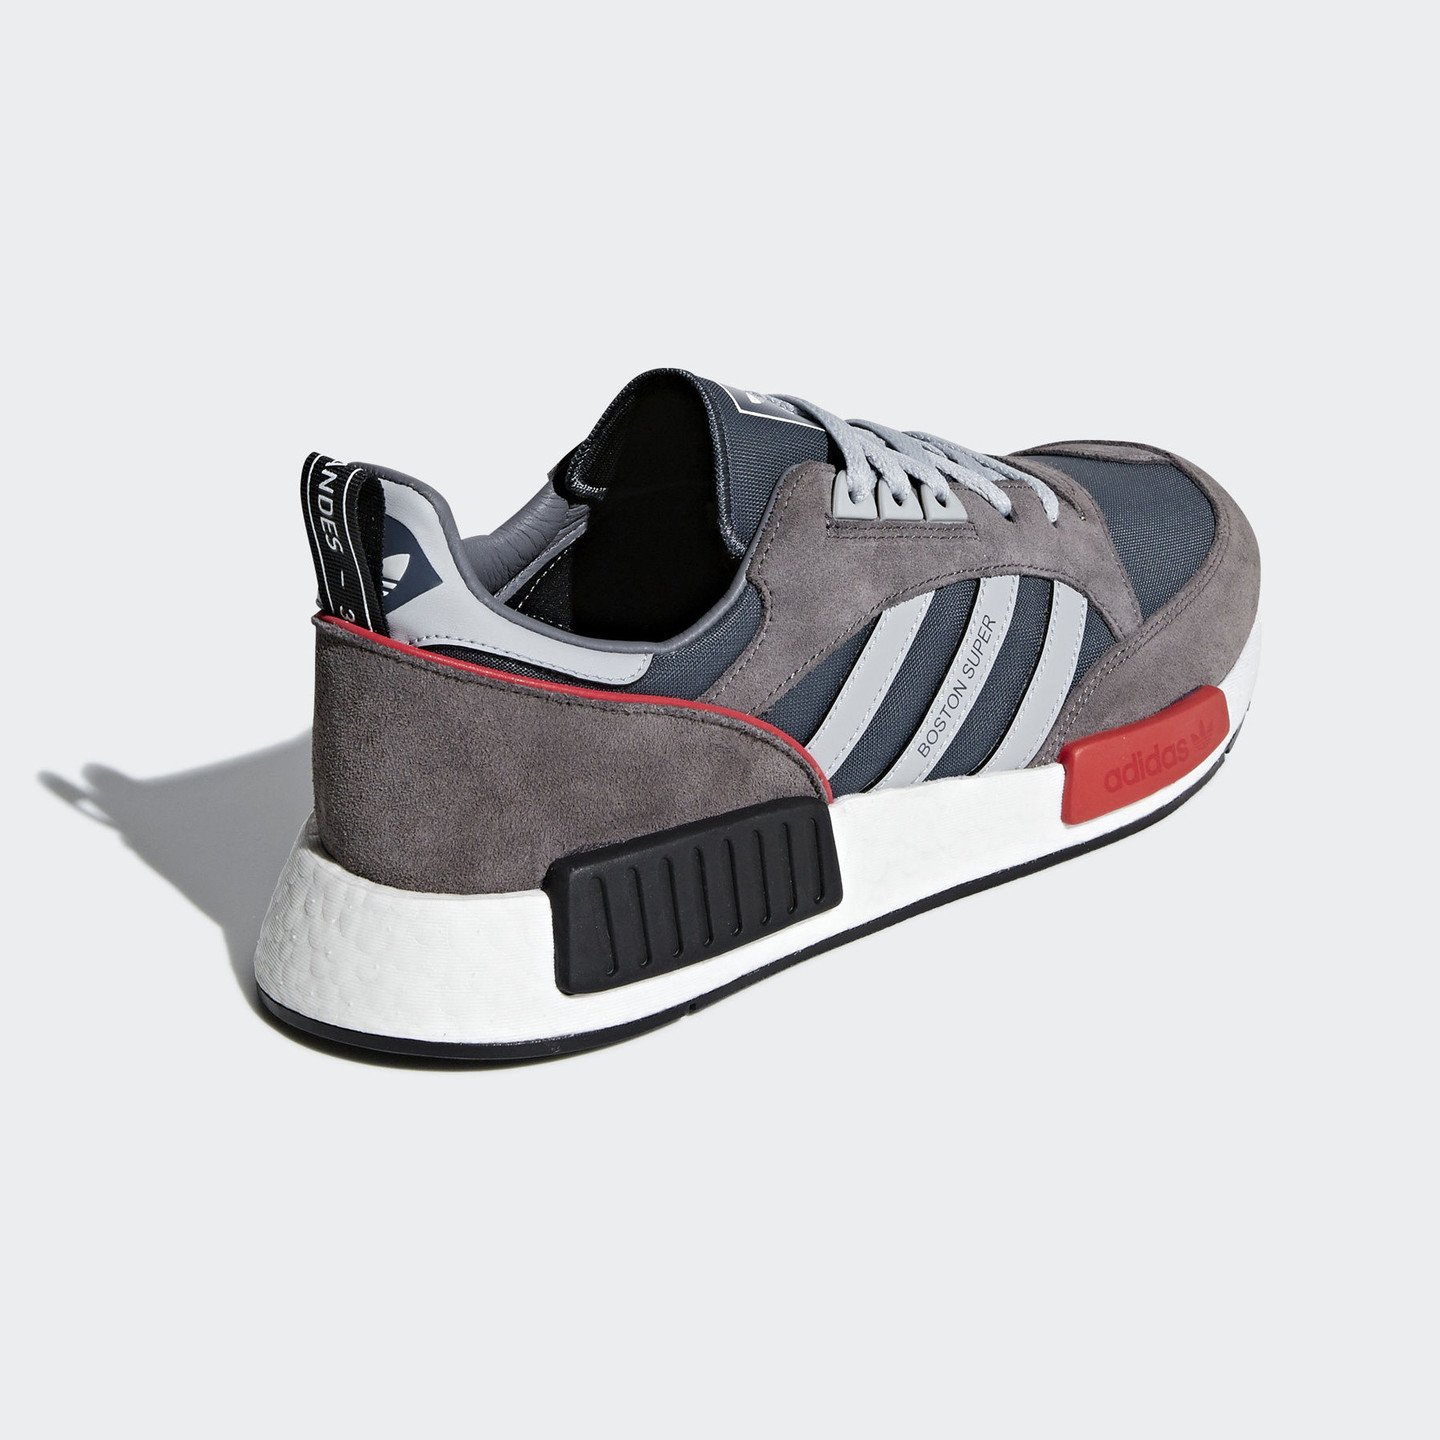 Adidas Boston Super x R1 'Never Made' Boonix / Clonix / Core Black G26776